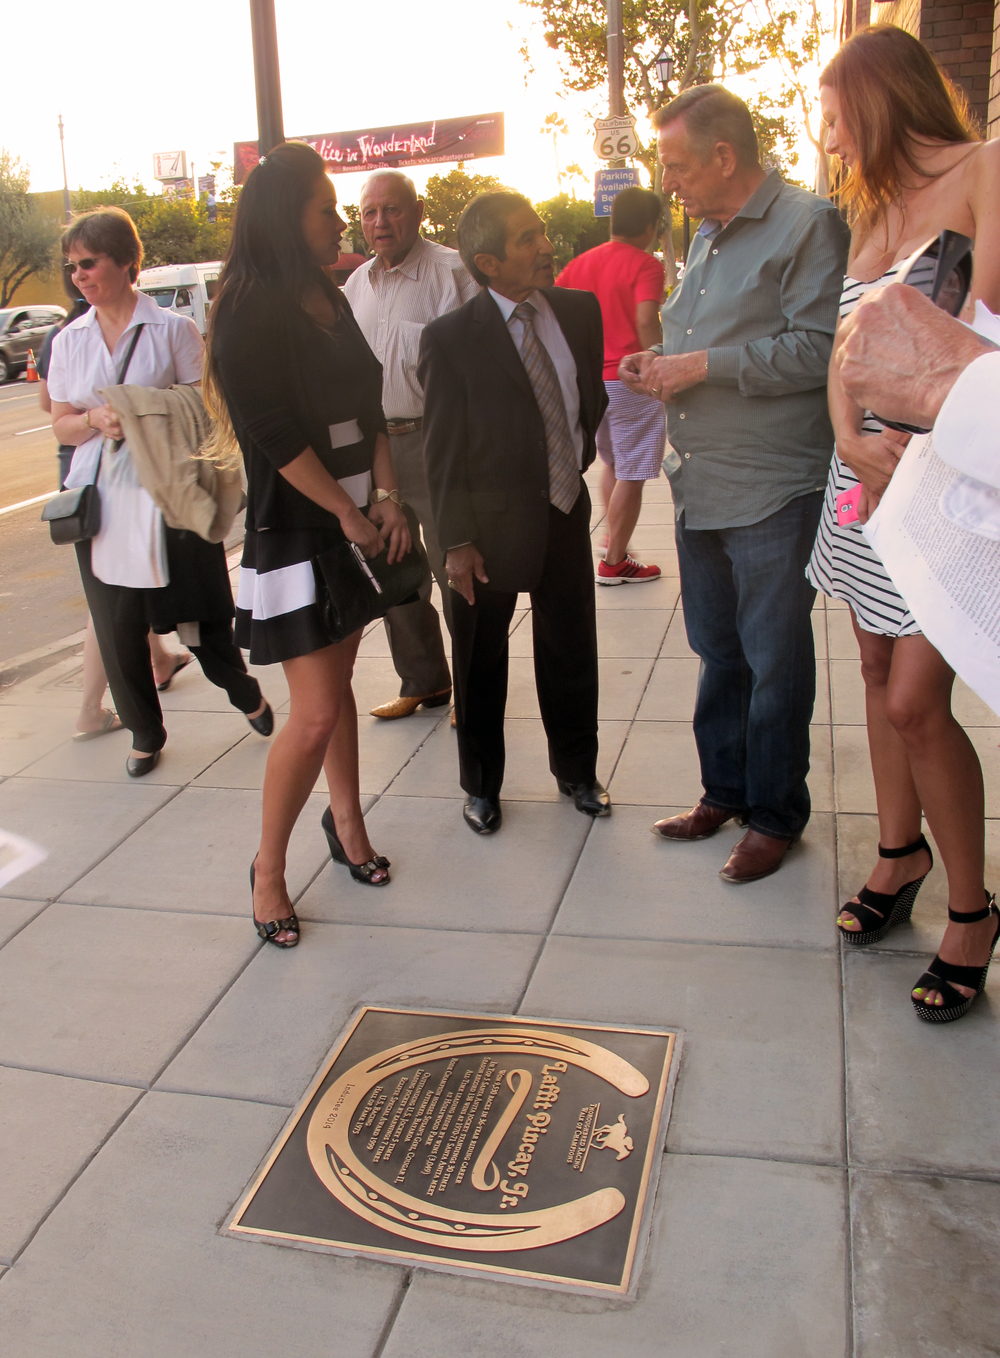 Laffit-Pincay-bronze plaque-thoroughbred-arcadia-walk of fame